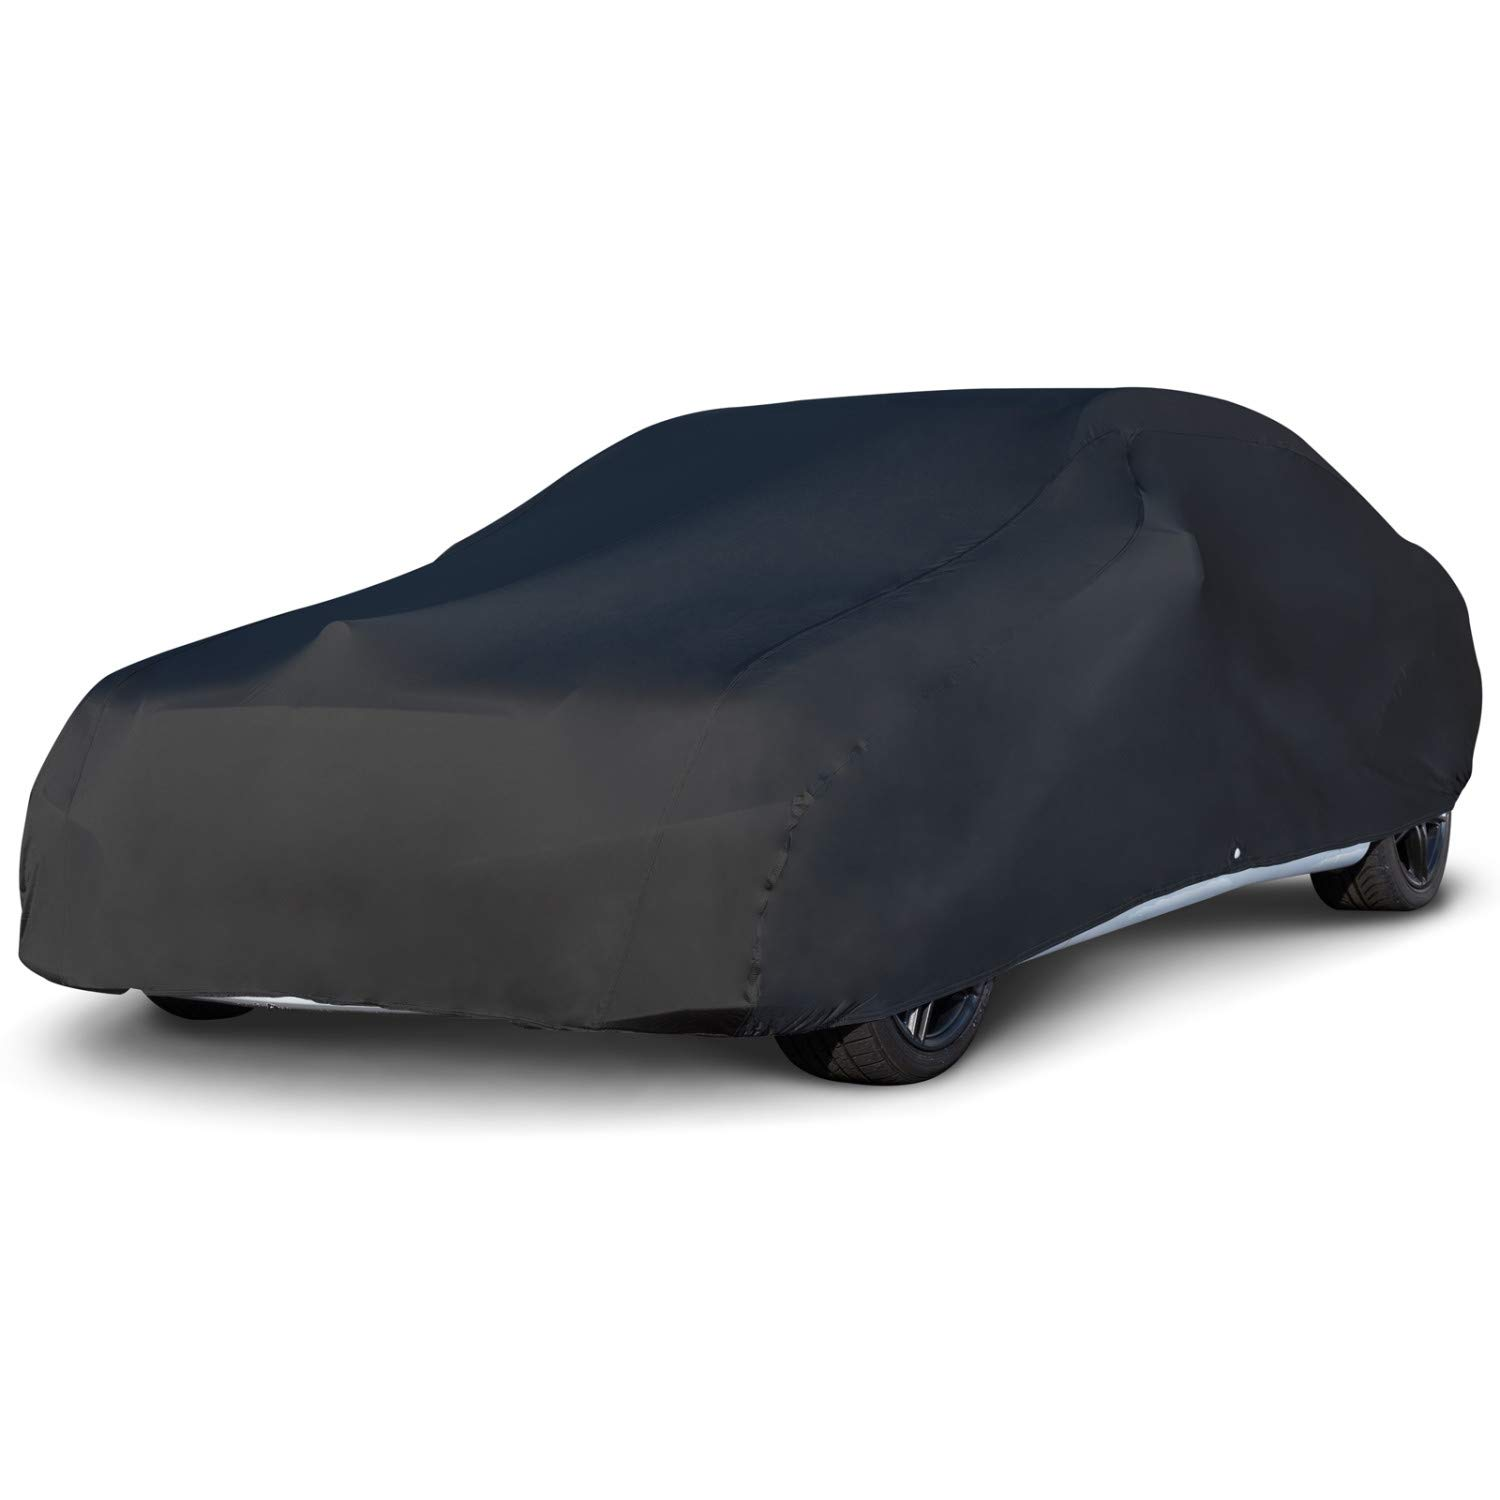 "Budge BSC-3 Black Car fits Cars up to 200"" Car Cover, Luxury Indoor Protection, Soft Inner Lining, Breathable, Dustproof"